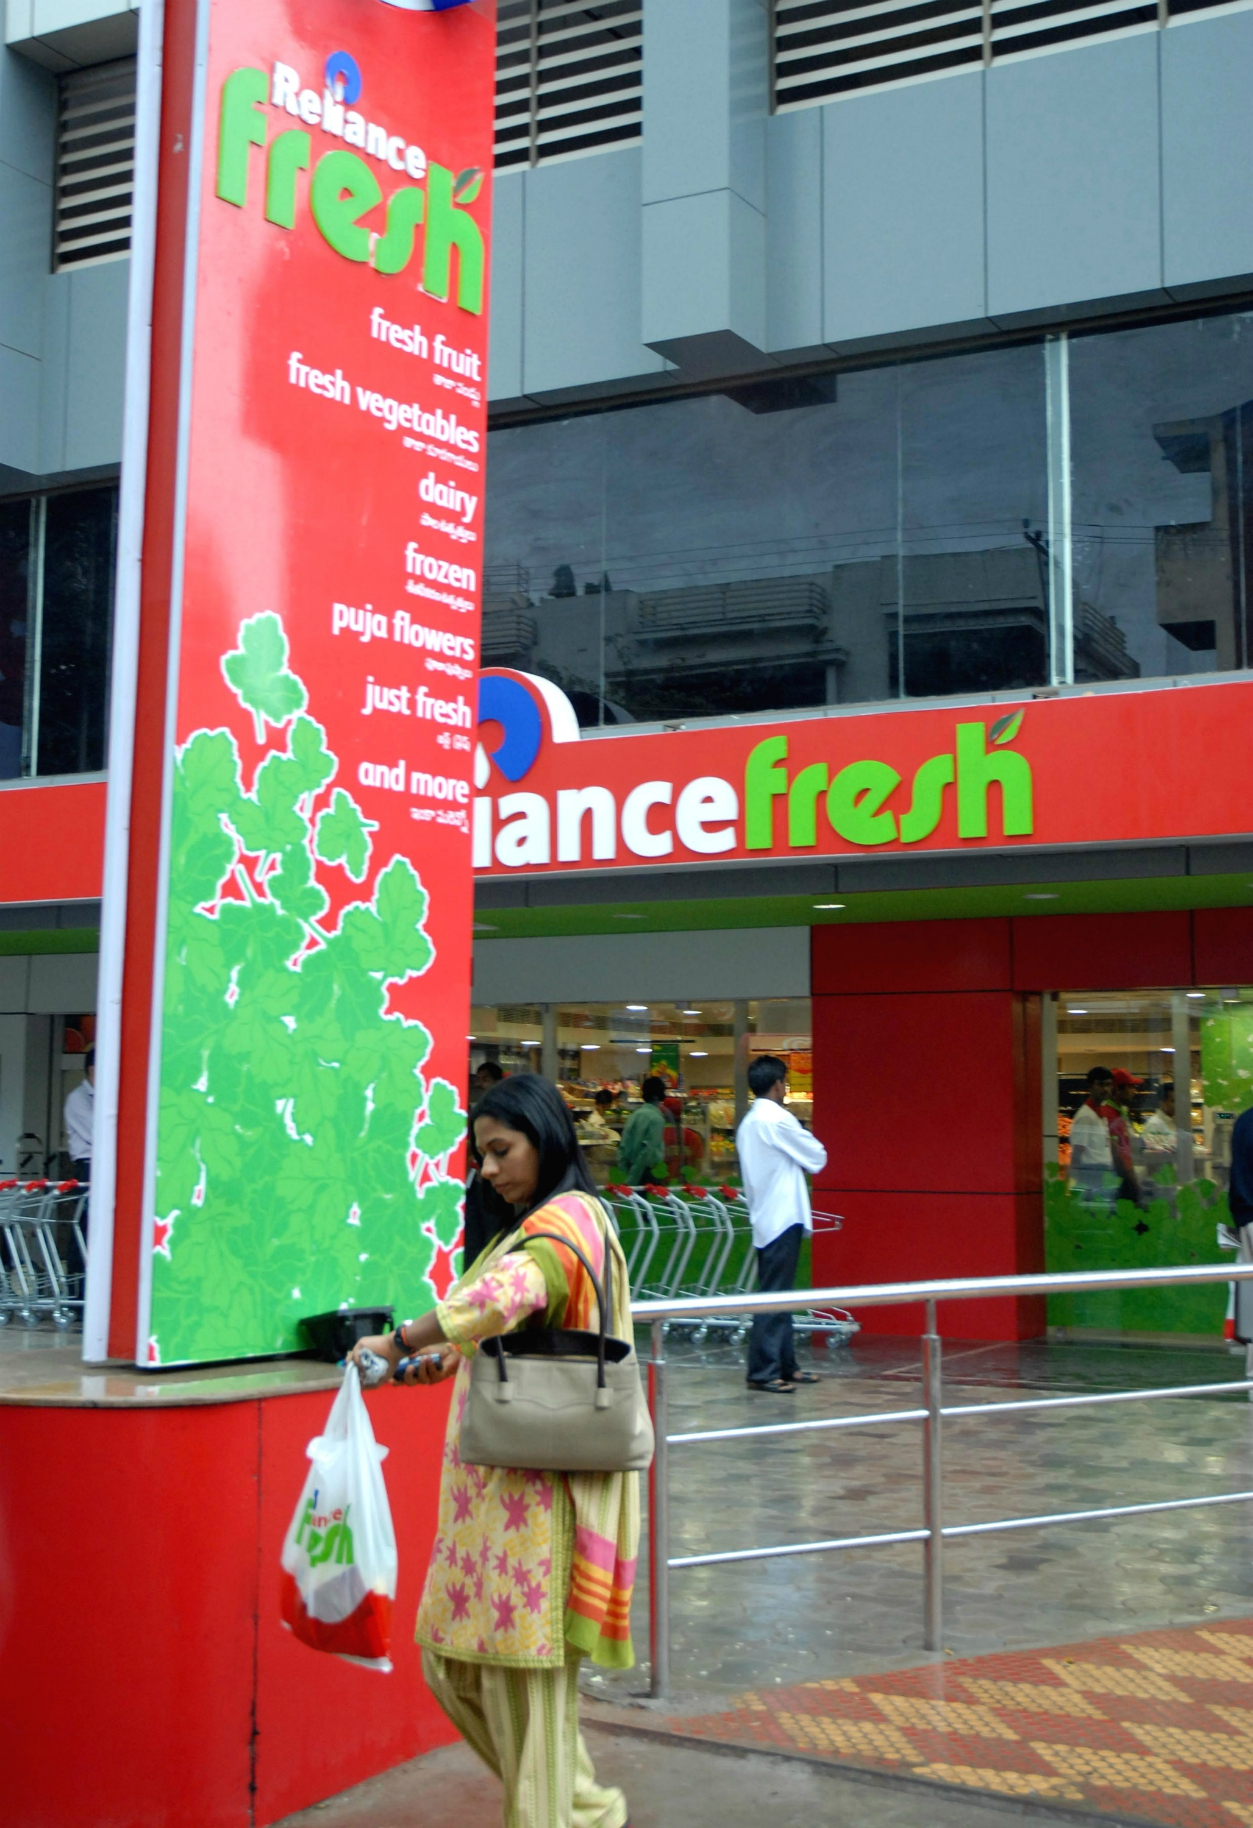 The Competition Commission of India approved Reliance Retail's $3.4 billion deal to acquire Future Group, despite Amazon's objections.